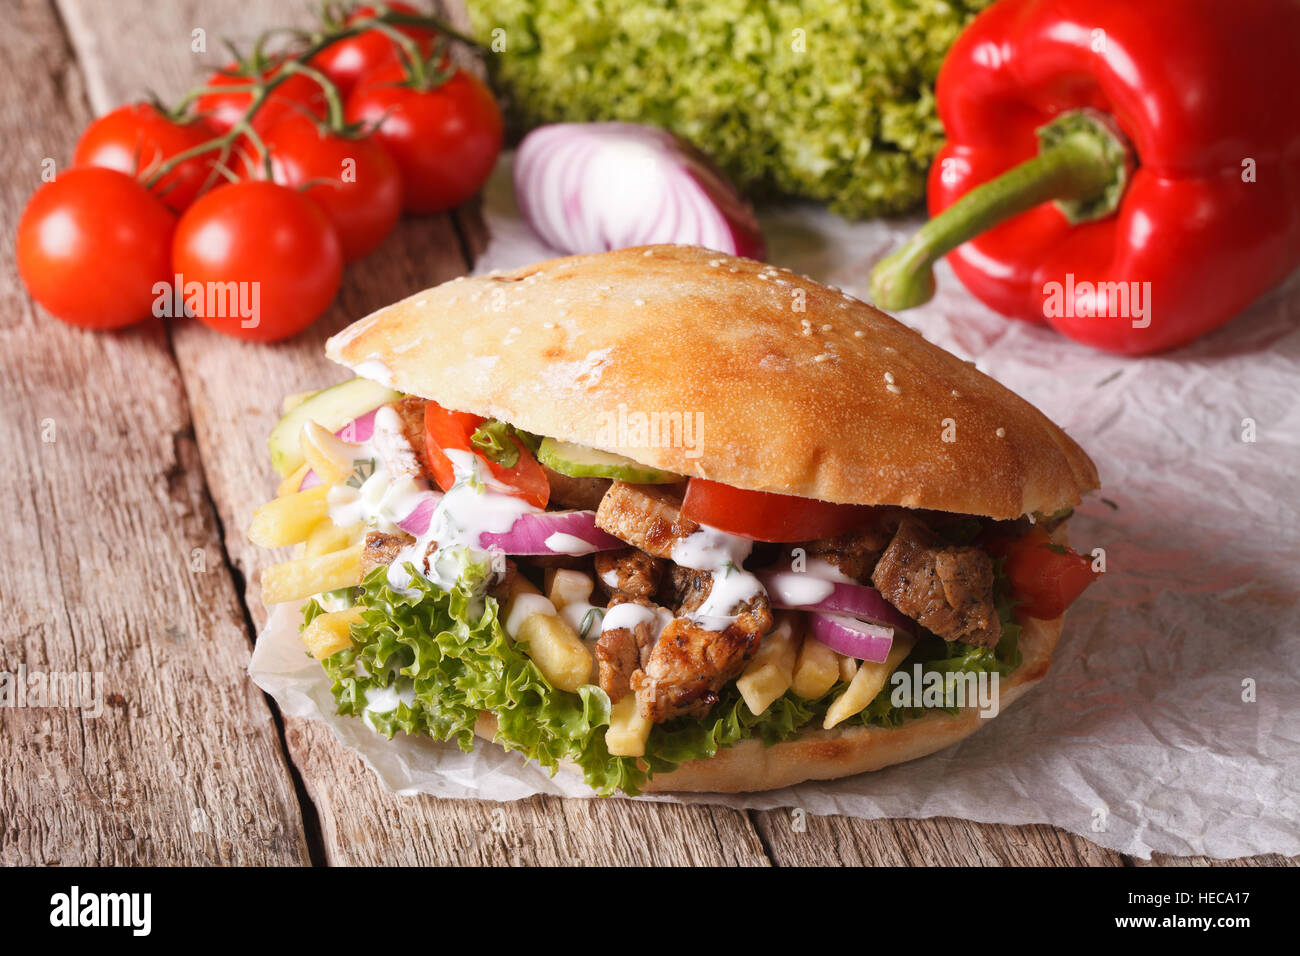 Fast Food: Doner kebab with meat, vegetables and french fries close-up on the table. horizontal - Stock Image